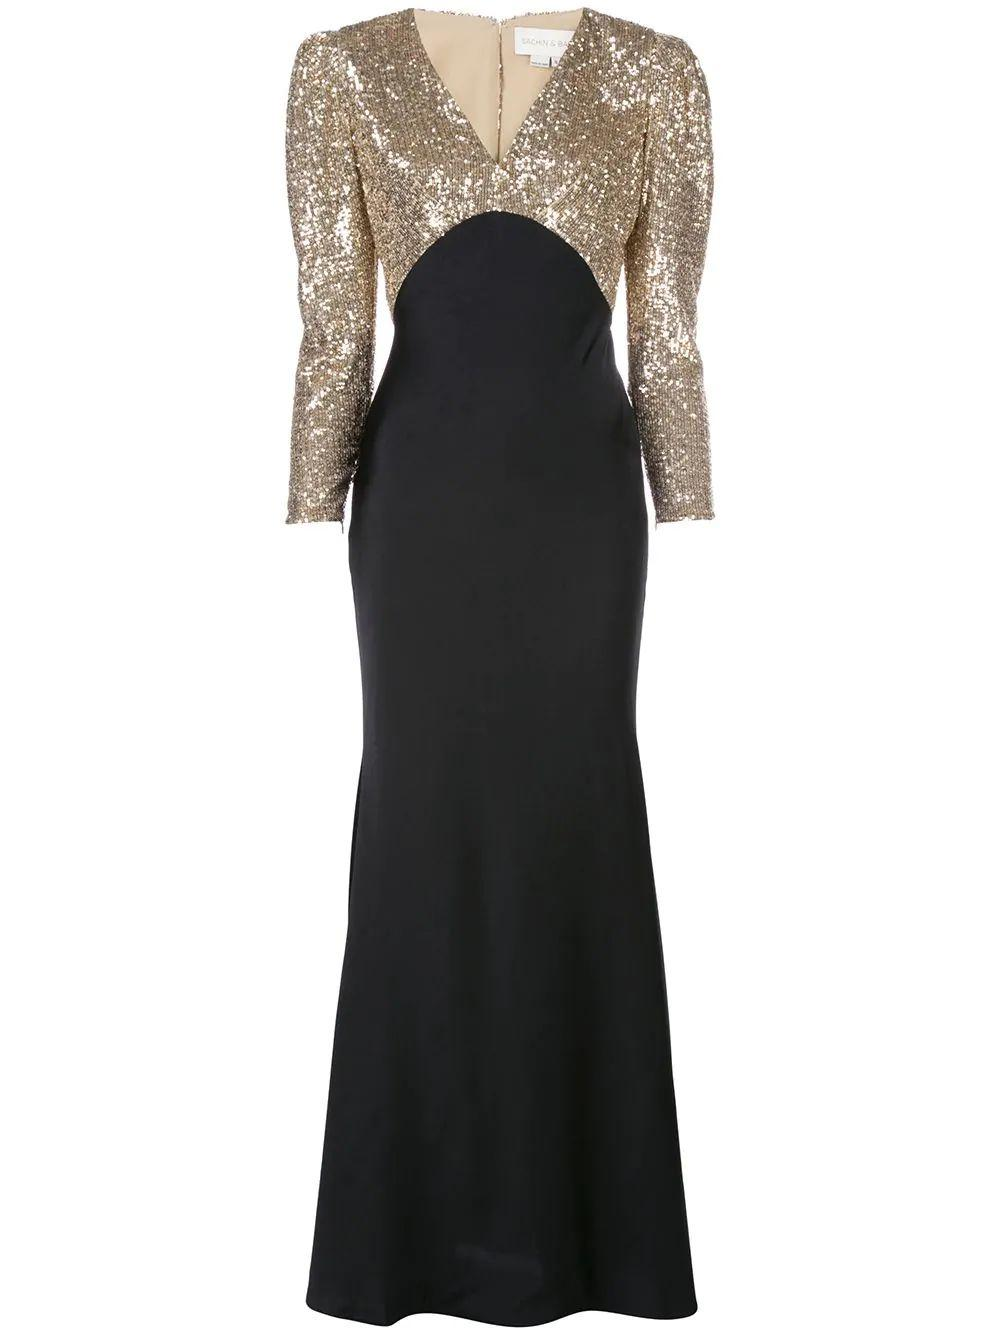 Louisa Lounging Sequin Top V Neck Gown Item # F29G01